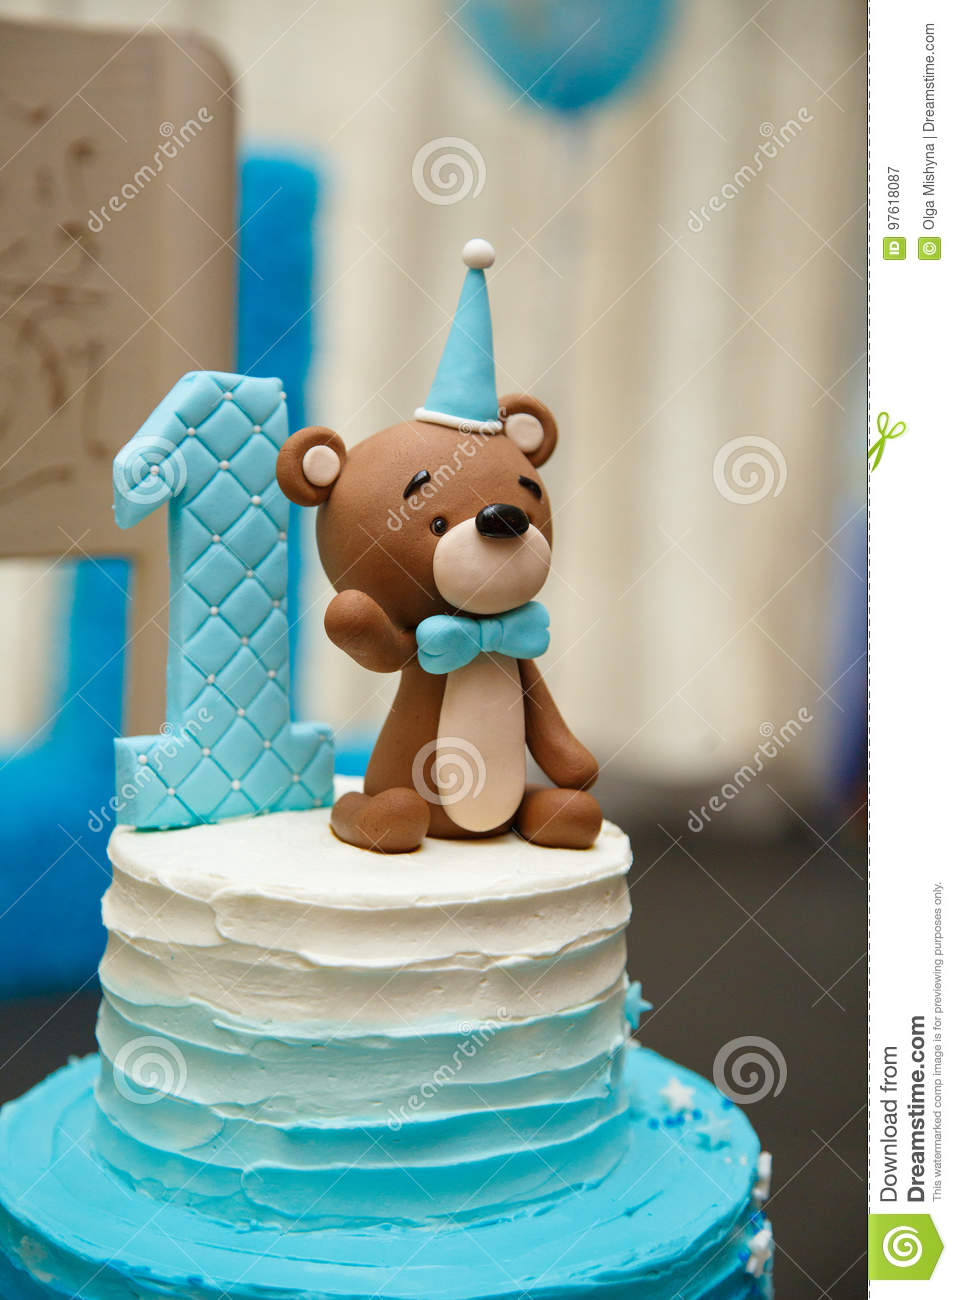 Pleasing Anazing Cake For Boy S First Birthday Stock Image Image Of Baby Funny Birthday Cards Online Alyptdamsfinfo